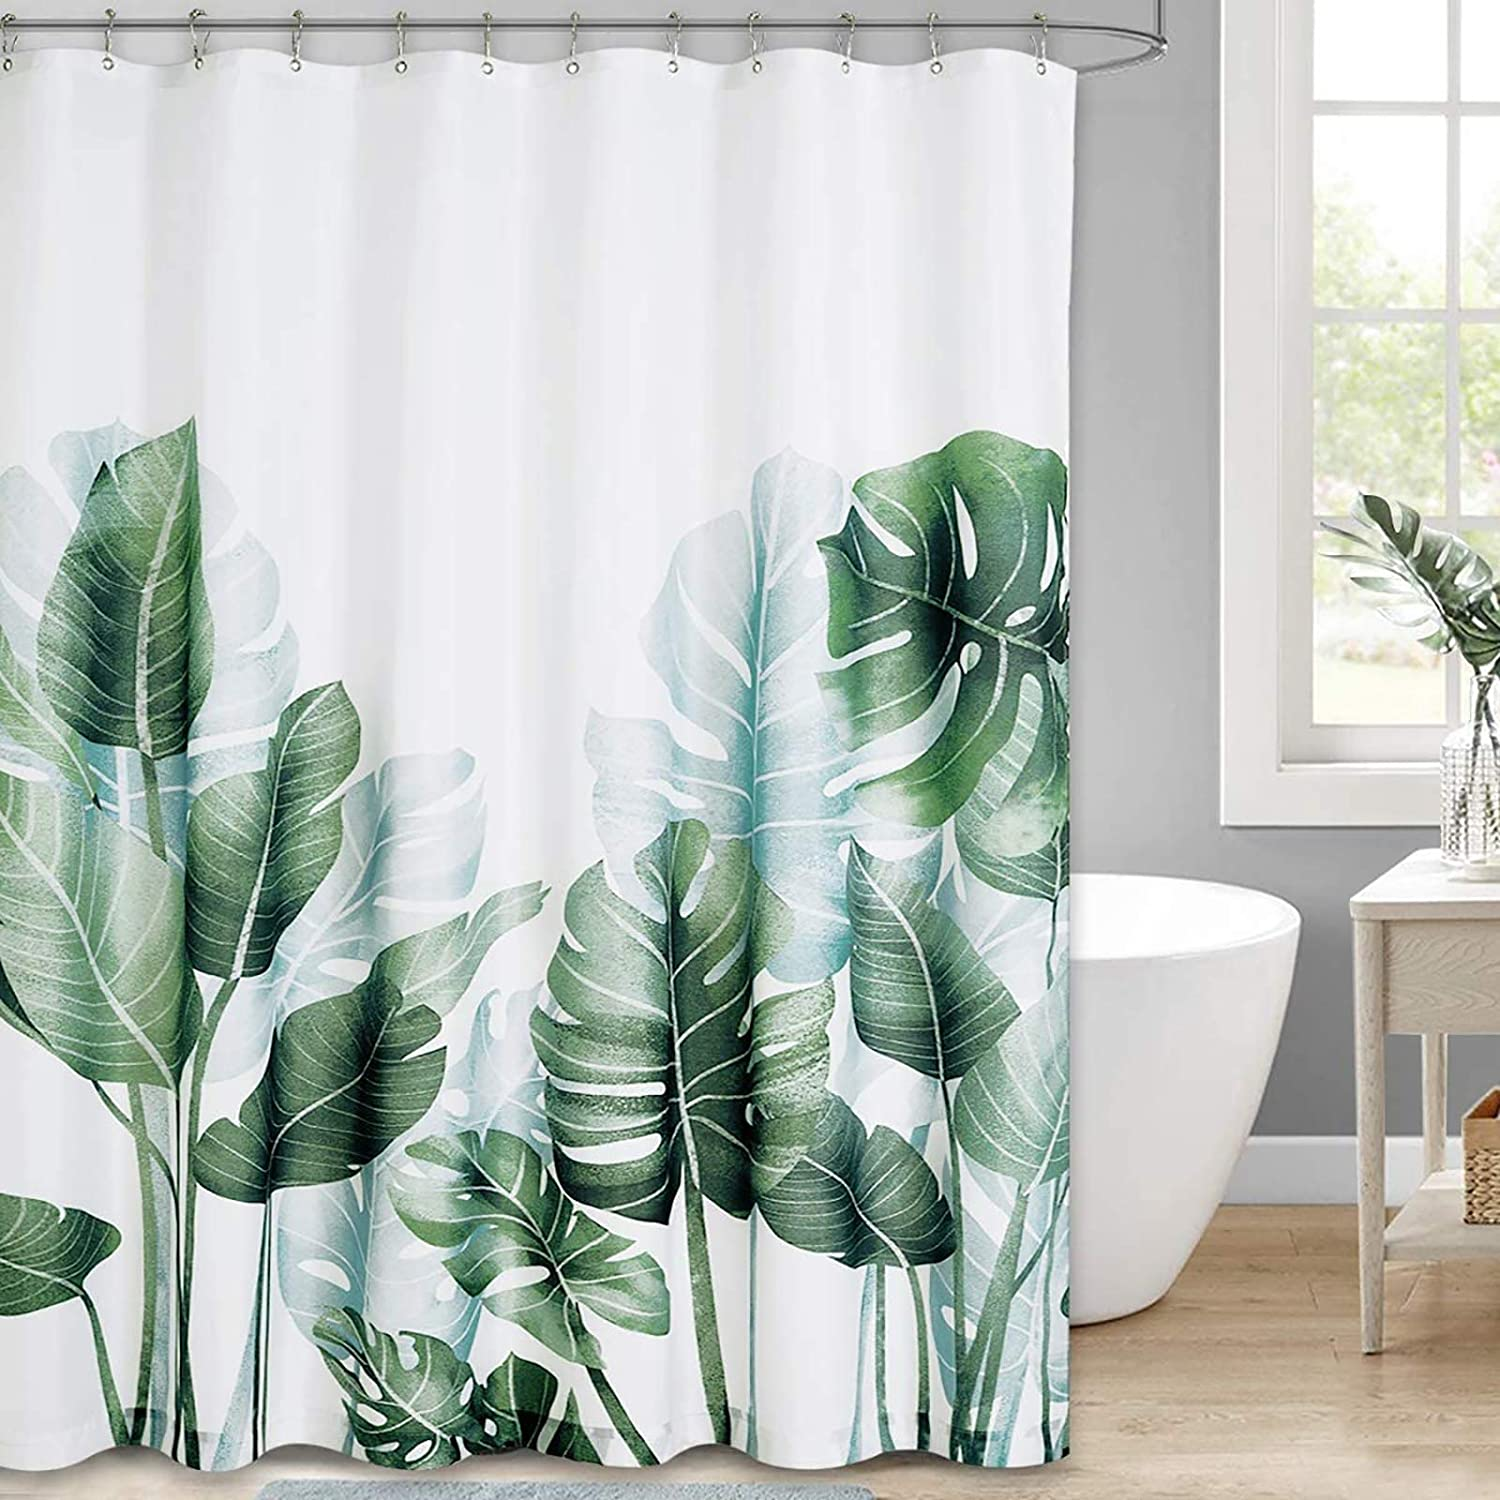 Botanical Shower Curtain Floral Green Cute Leaf Nature Wild Plants Tropical Plant Grass Palm Tree Banana Leaves Tropical Palm Fabric Waterproof Bathroom Home Decor Set 72x72 Inch